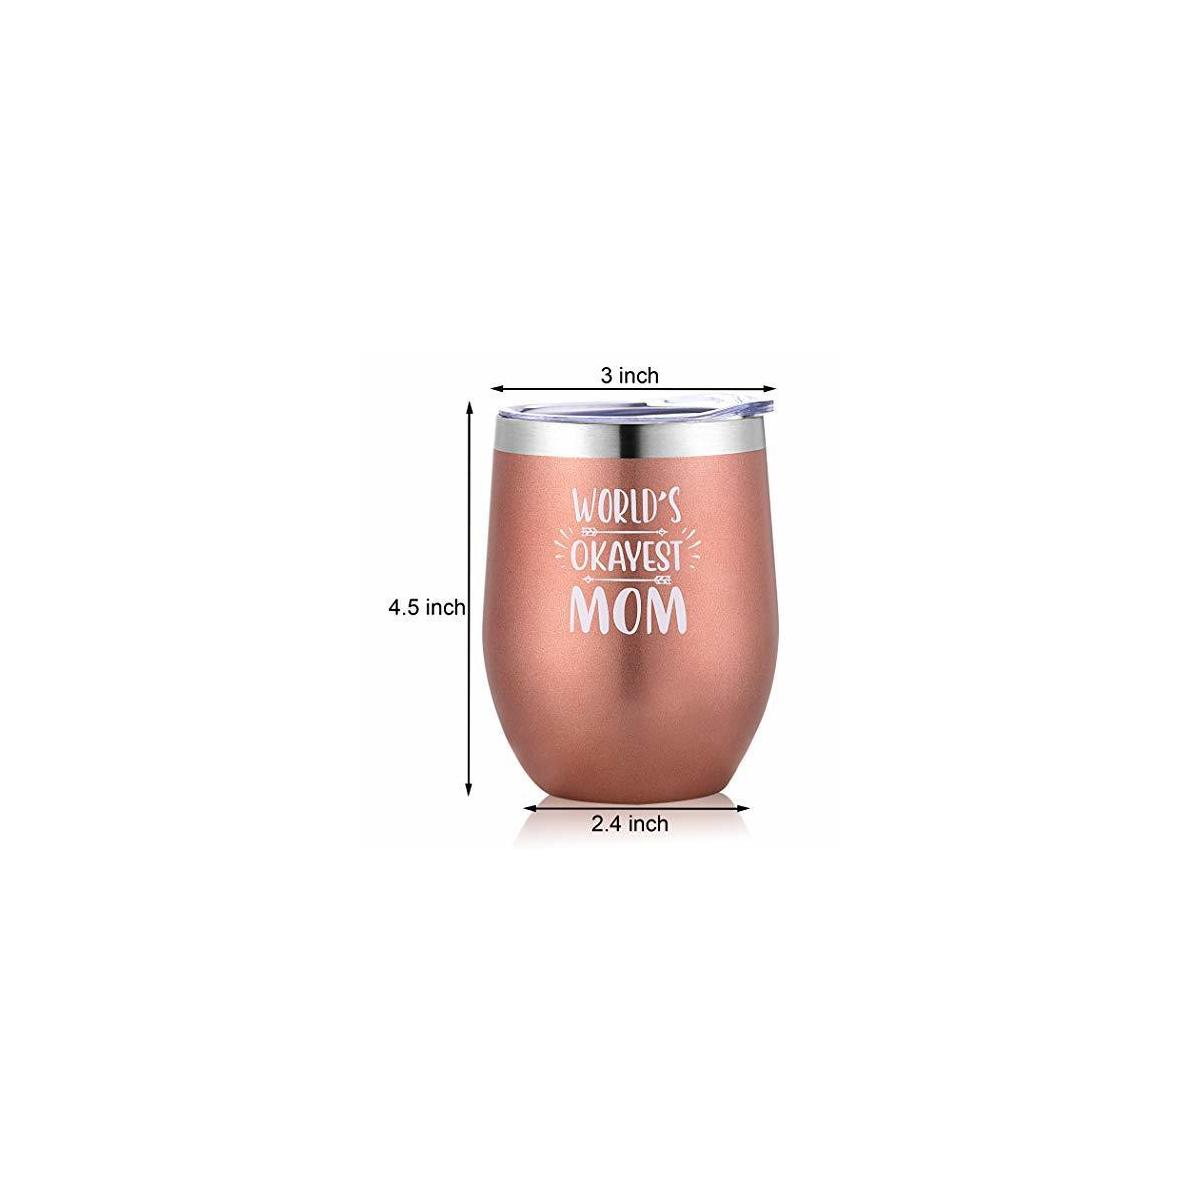 World's Okayest Mom Wine Tumbler with Lid - 12oz Insulated Stainless Steel Stemless Wine Glasses Cup – Birthday Christmas Gifts for Women, Wife, New Mom, Pregnant Mom, Aunt, Sister, Girlfriend